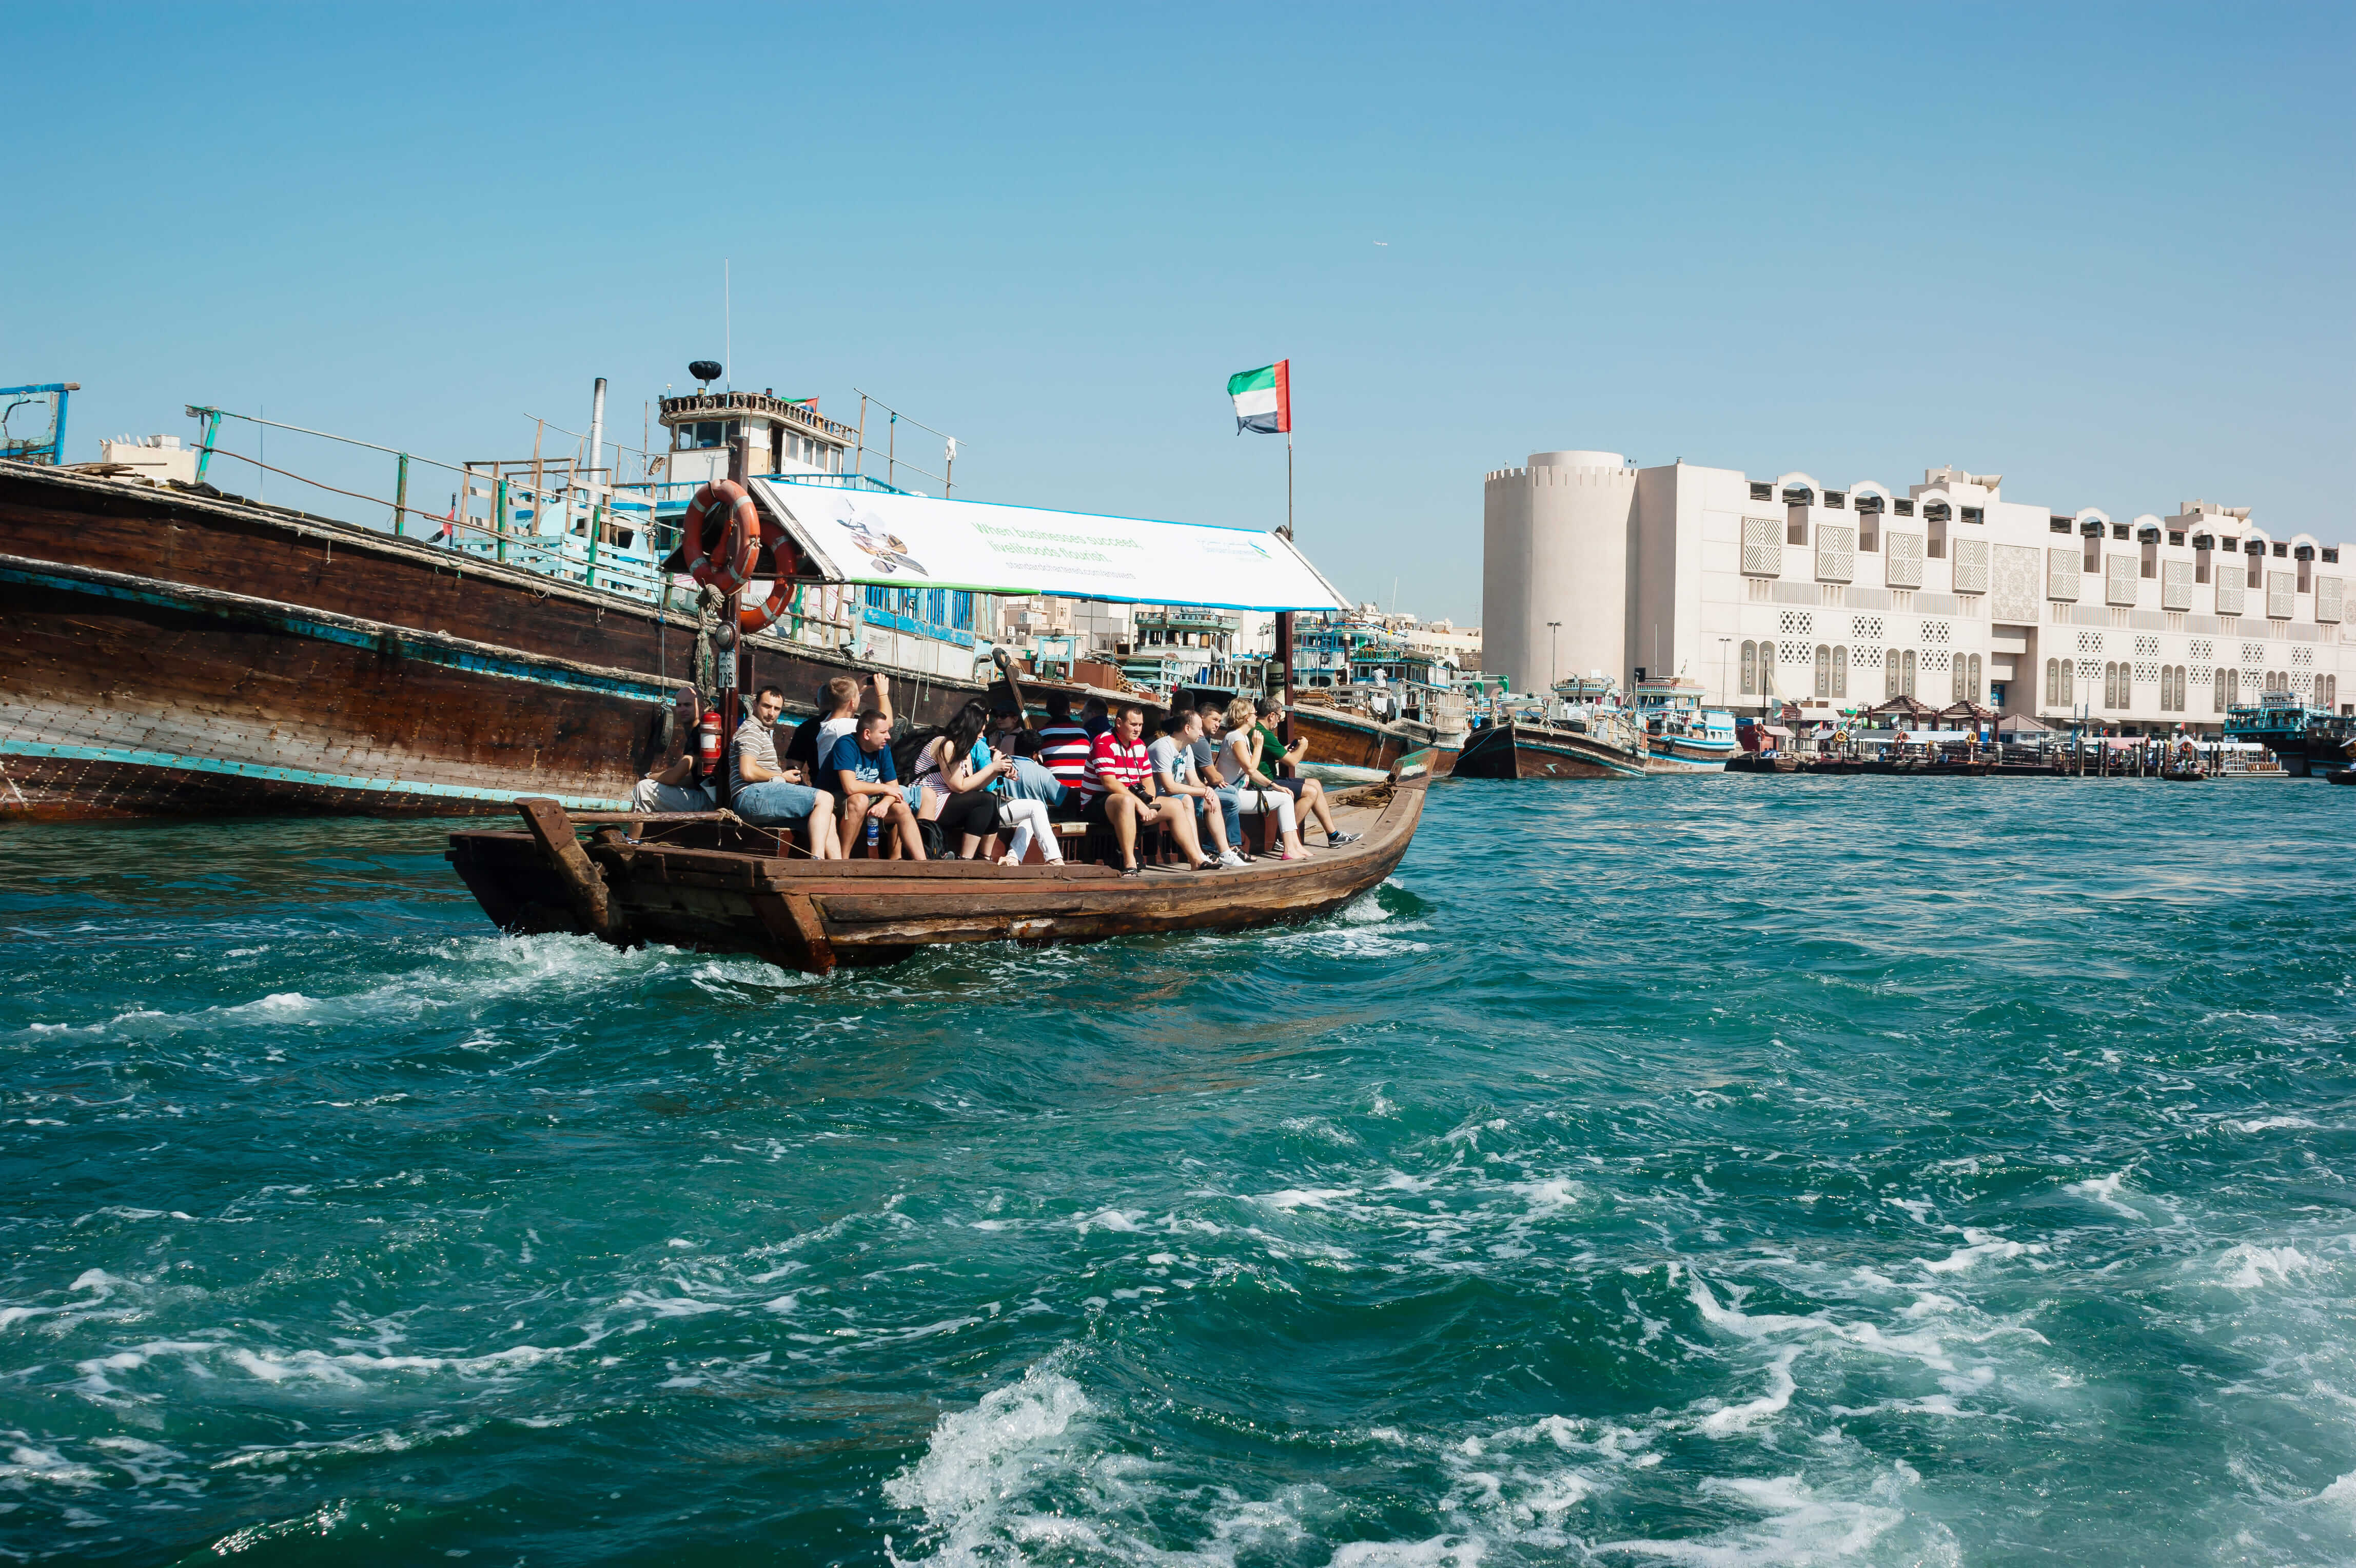 Photography Tour- Explore Picturesque Landscapes Of Old And Modern Dubai - Travel Fube